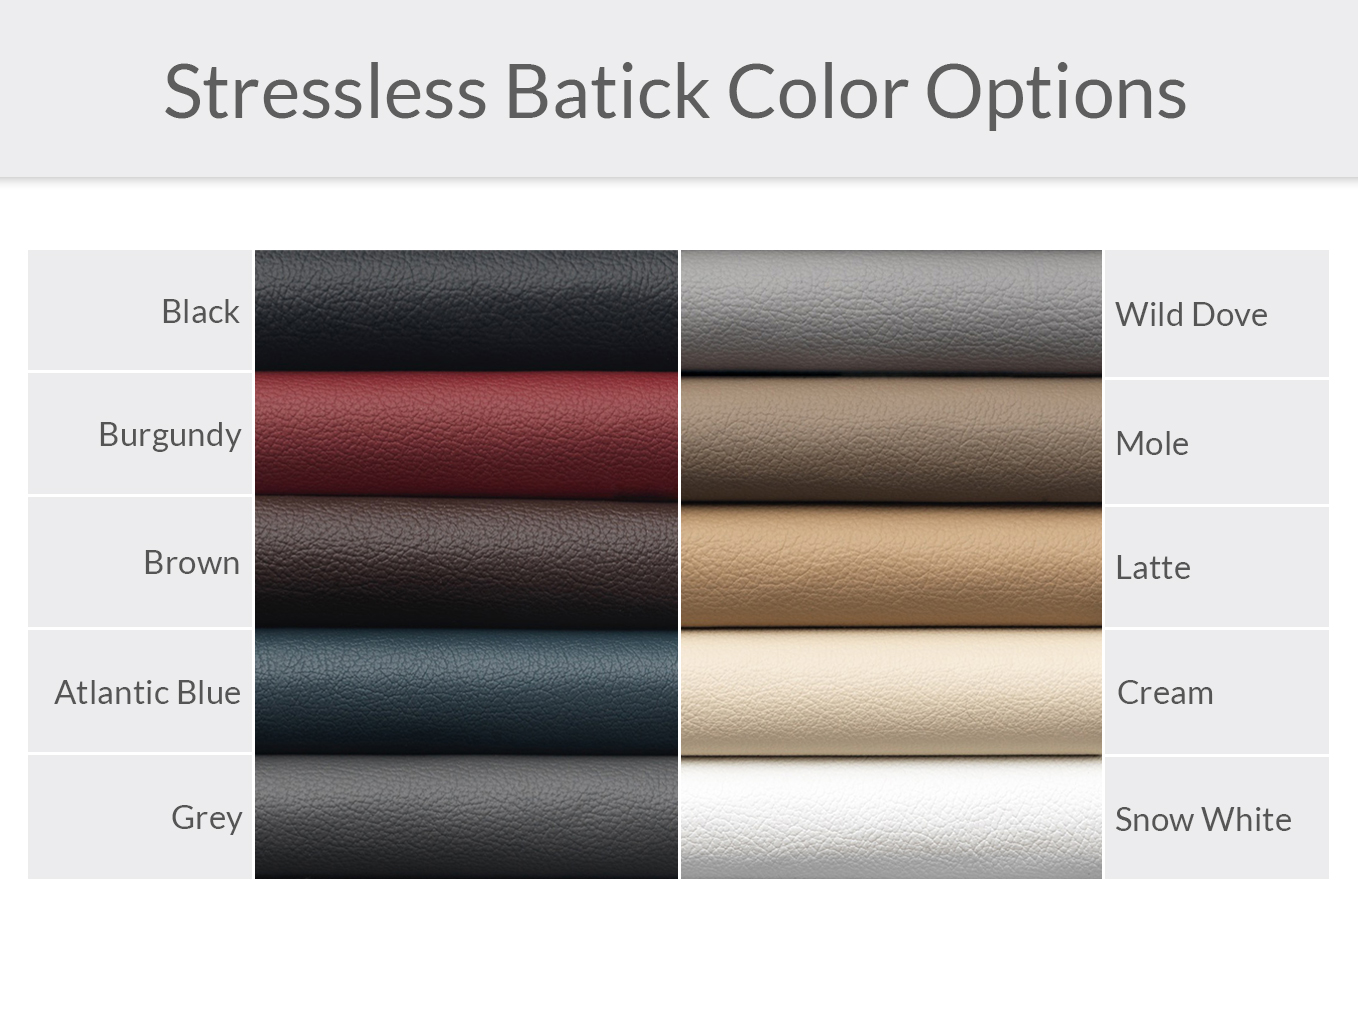 Stressless Batick Leather Color Options